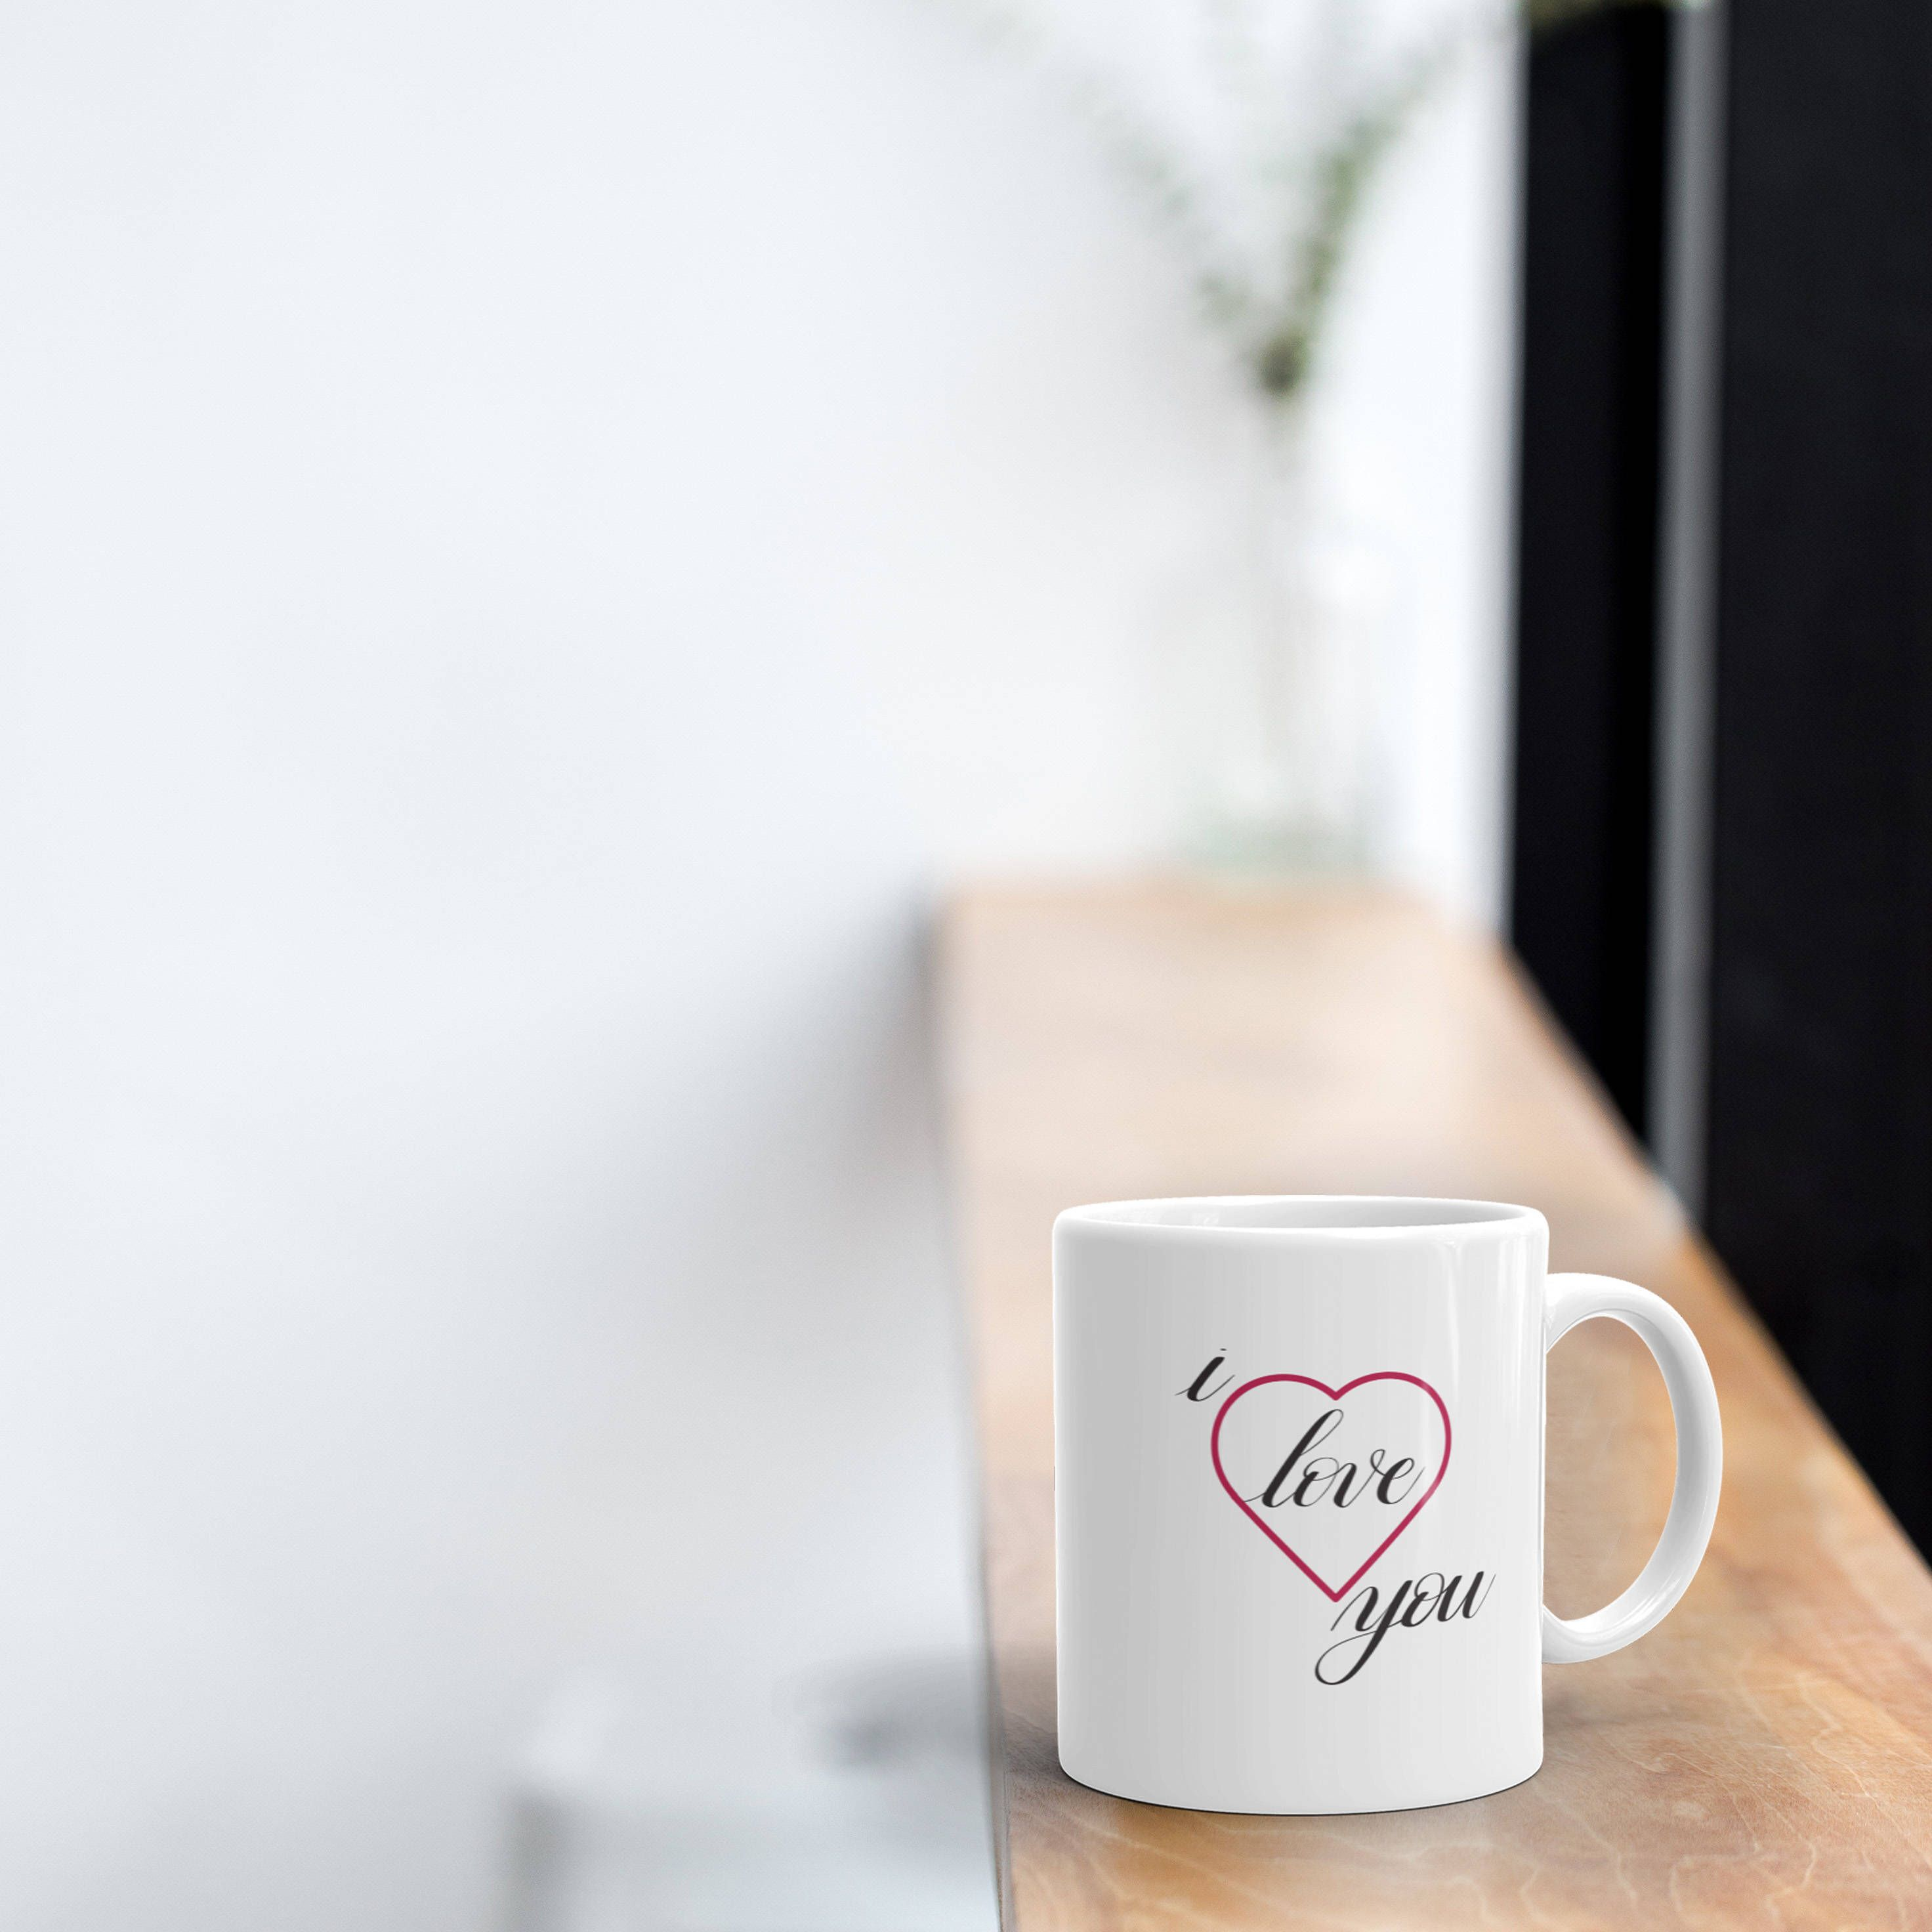 Heart Mug Cup For The Couple Vector Free Image By Rawpixel Com Aum Vector Free Vector Stock Images Free